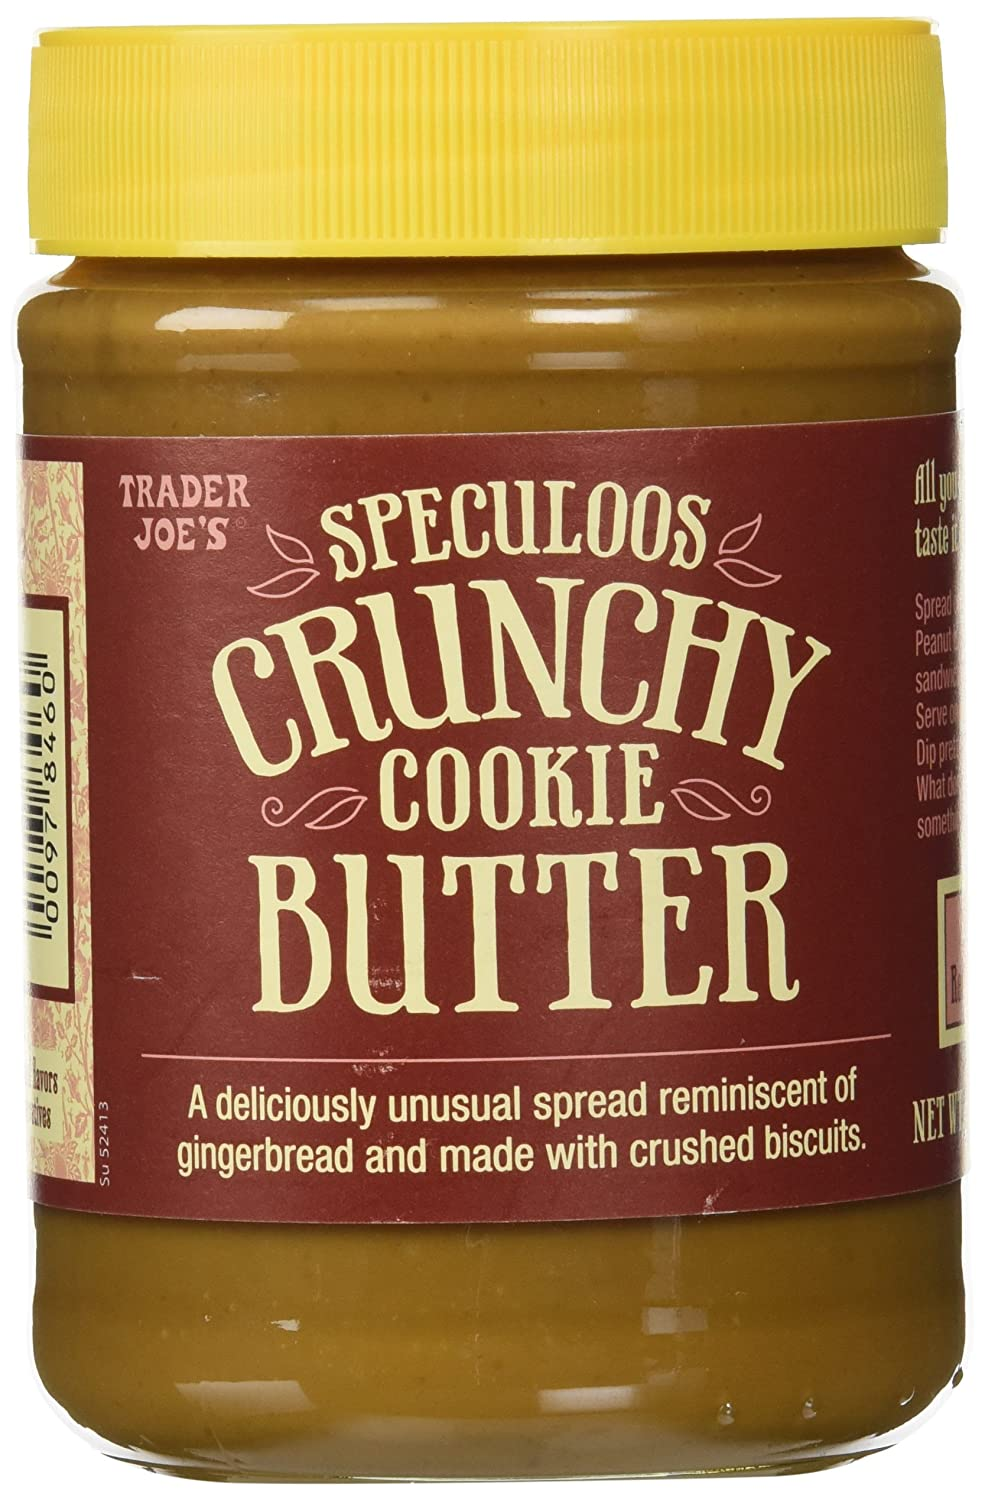 Trader Joe's Speculoos Crunchy Cookie Butter 14.1 ounces